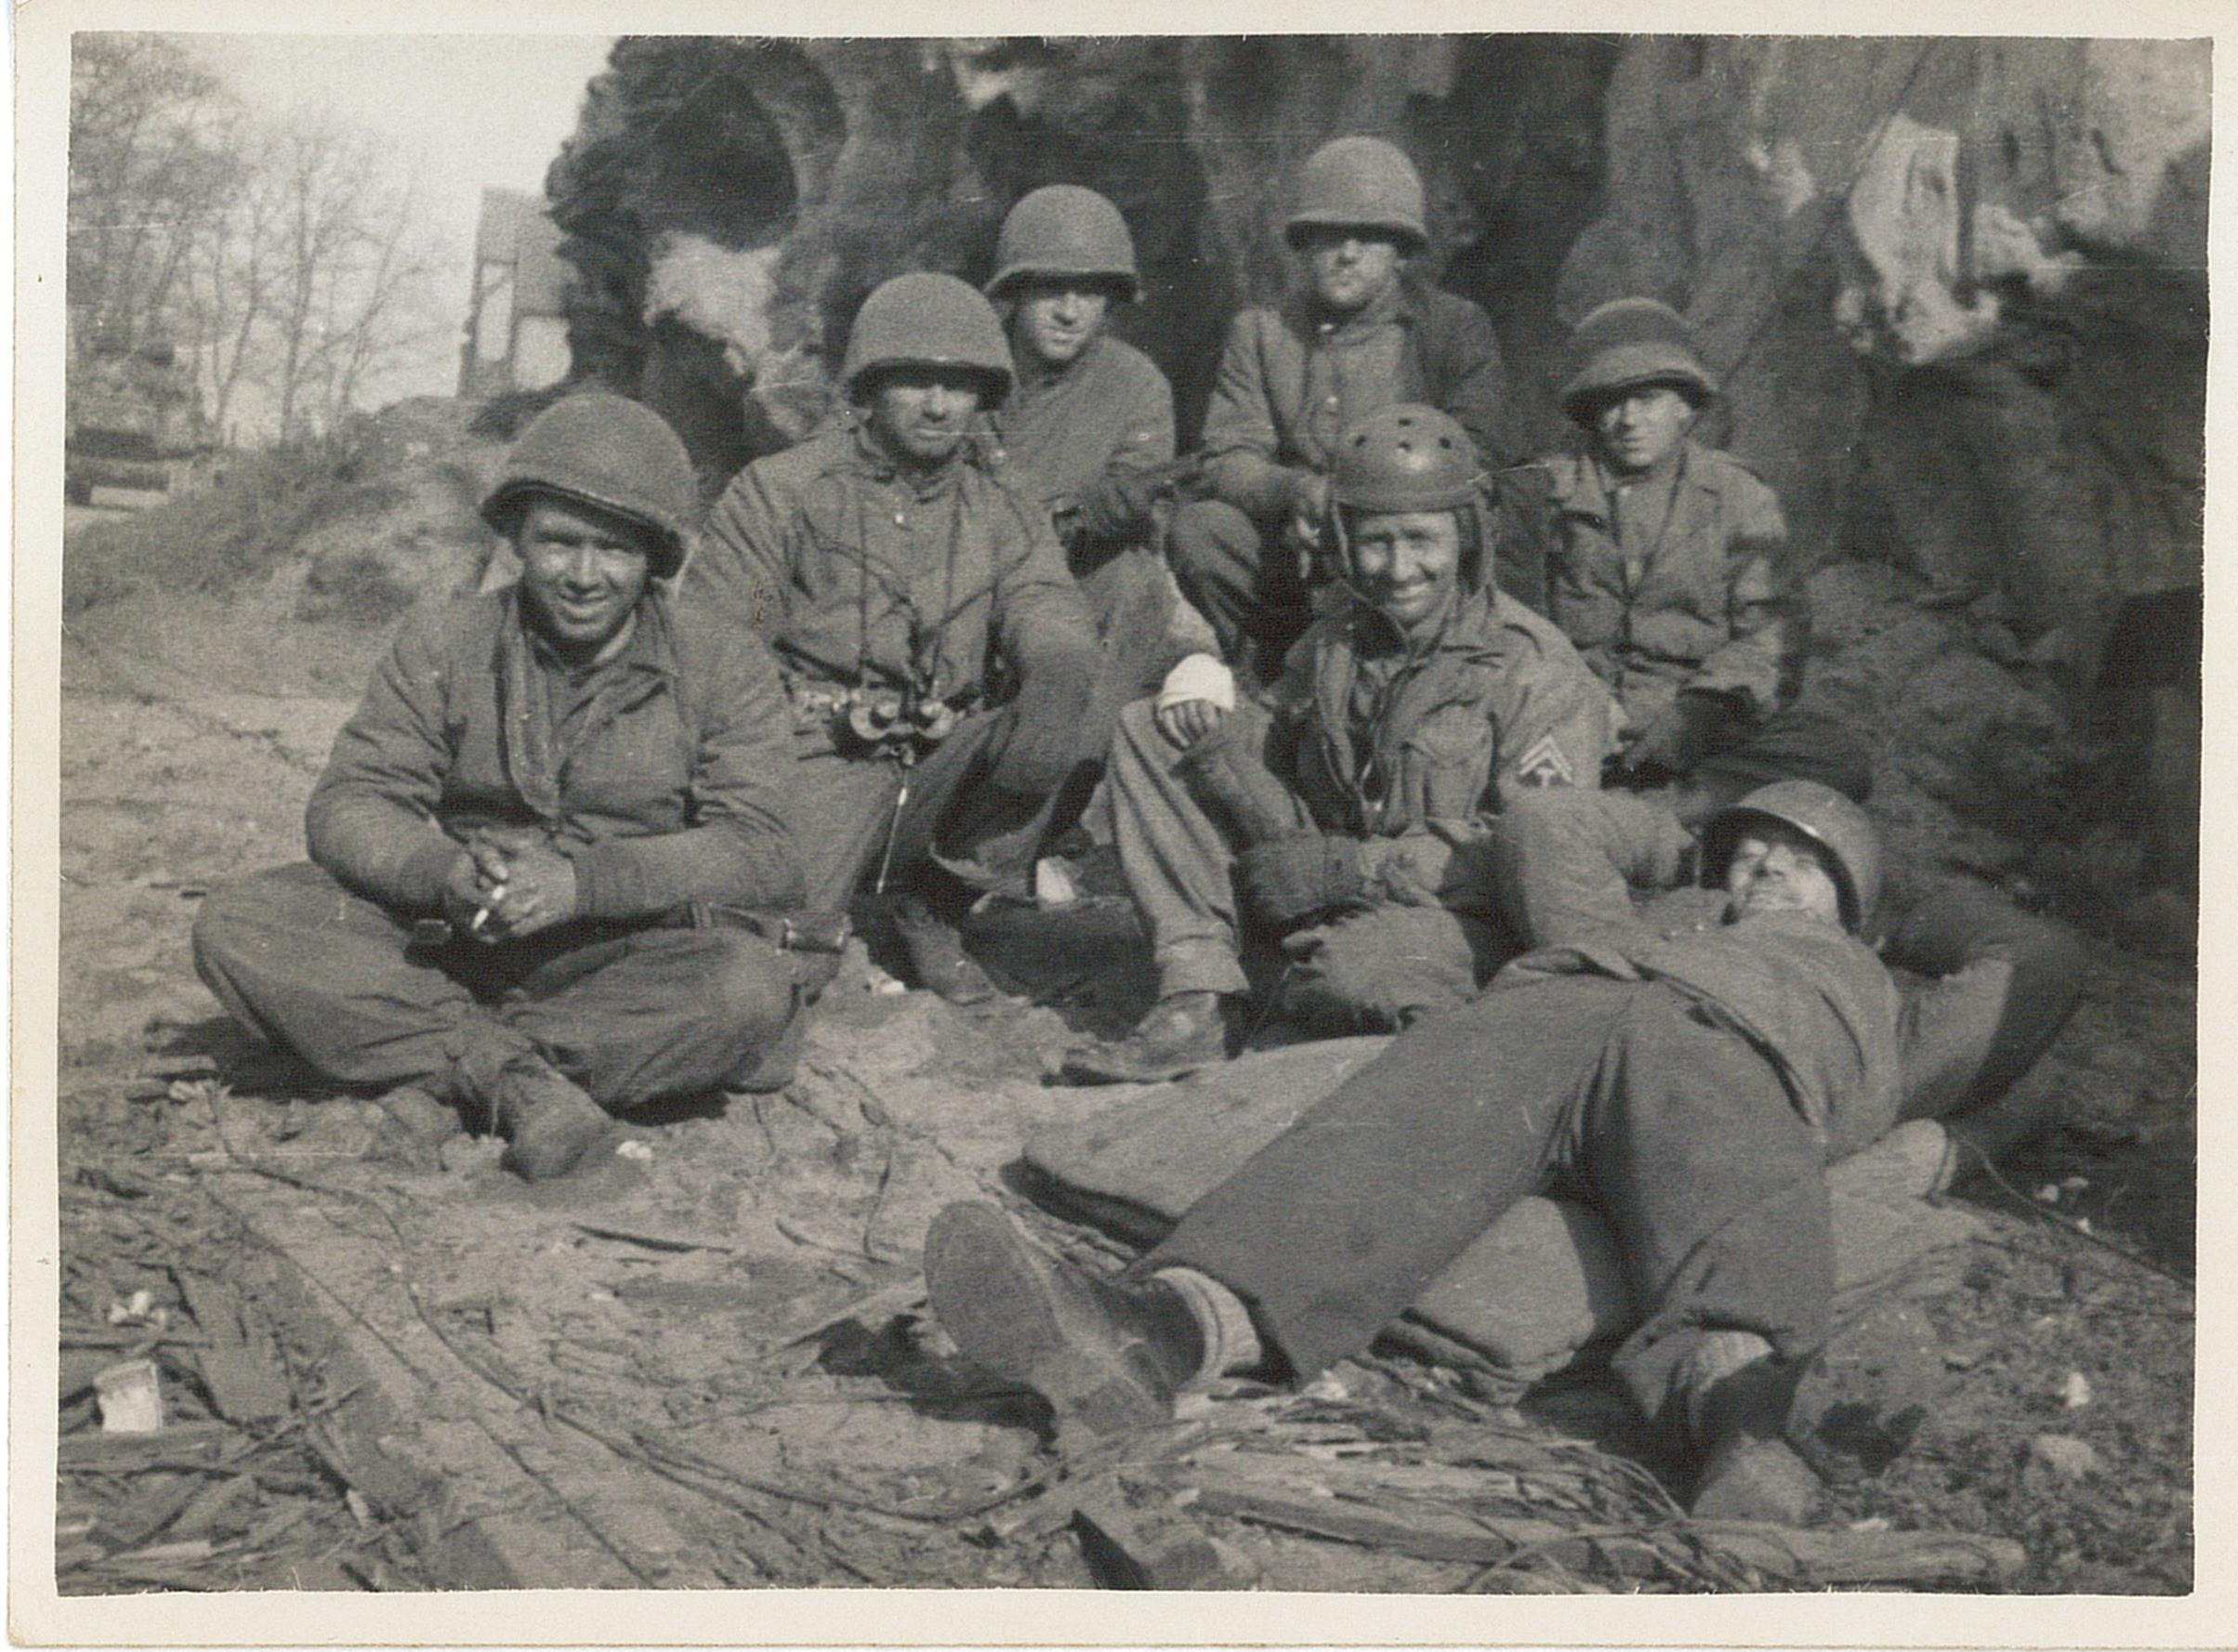 Photo of men in France during WW II